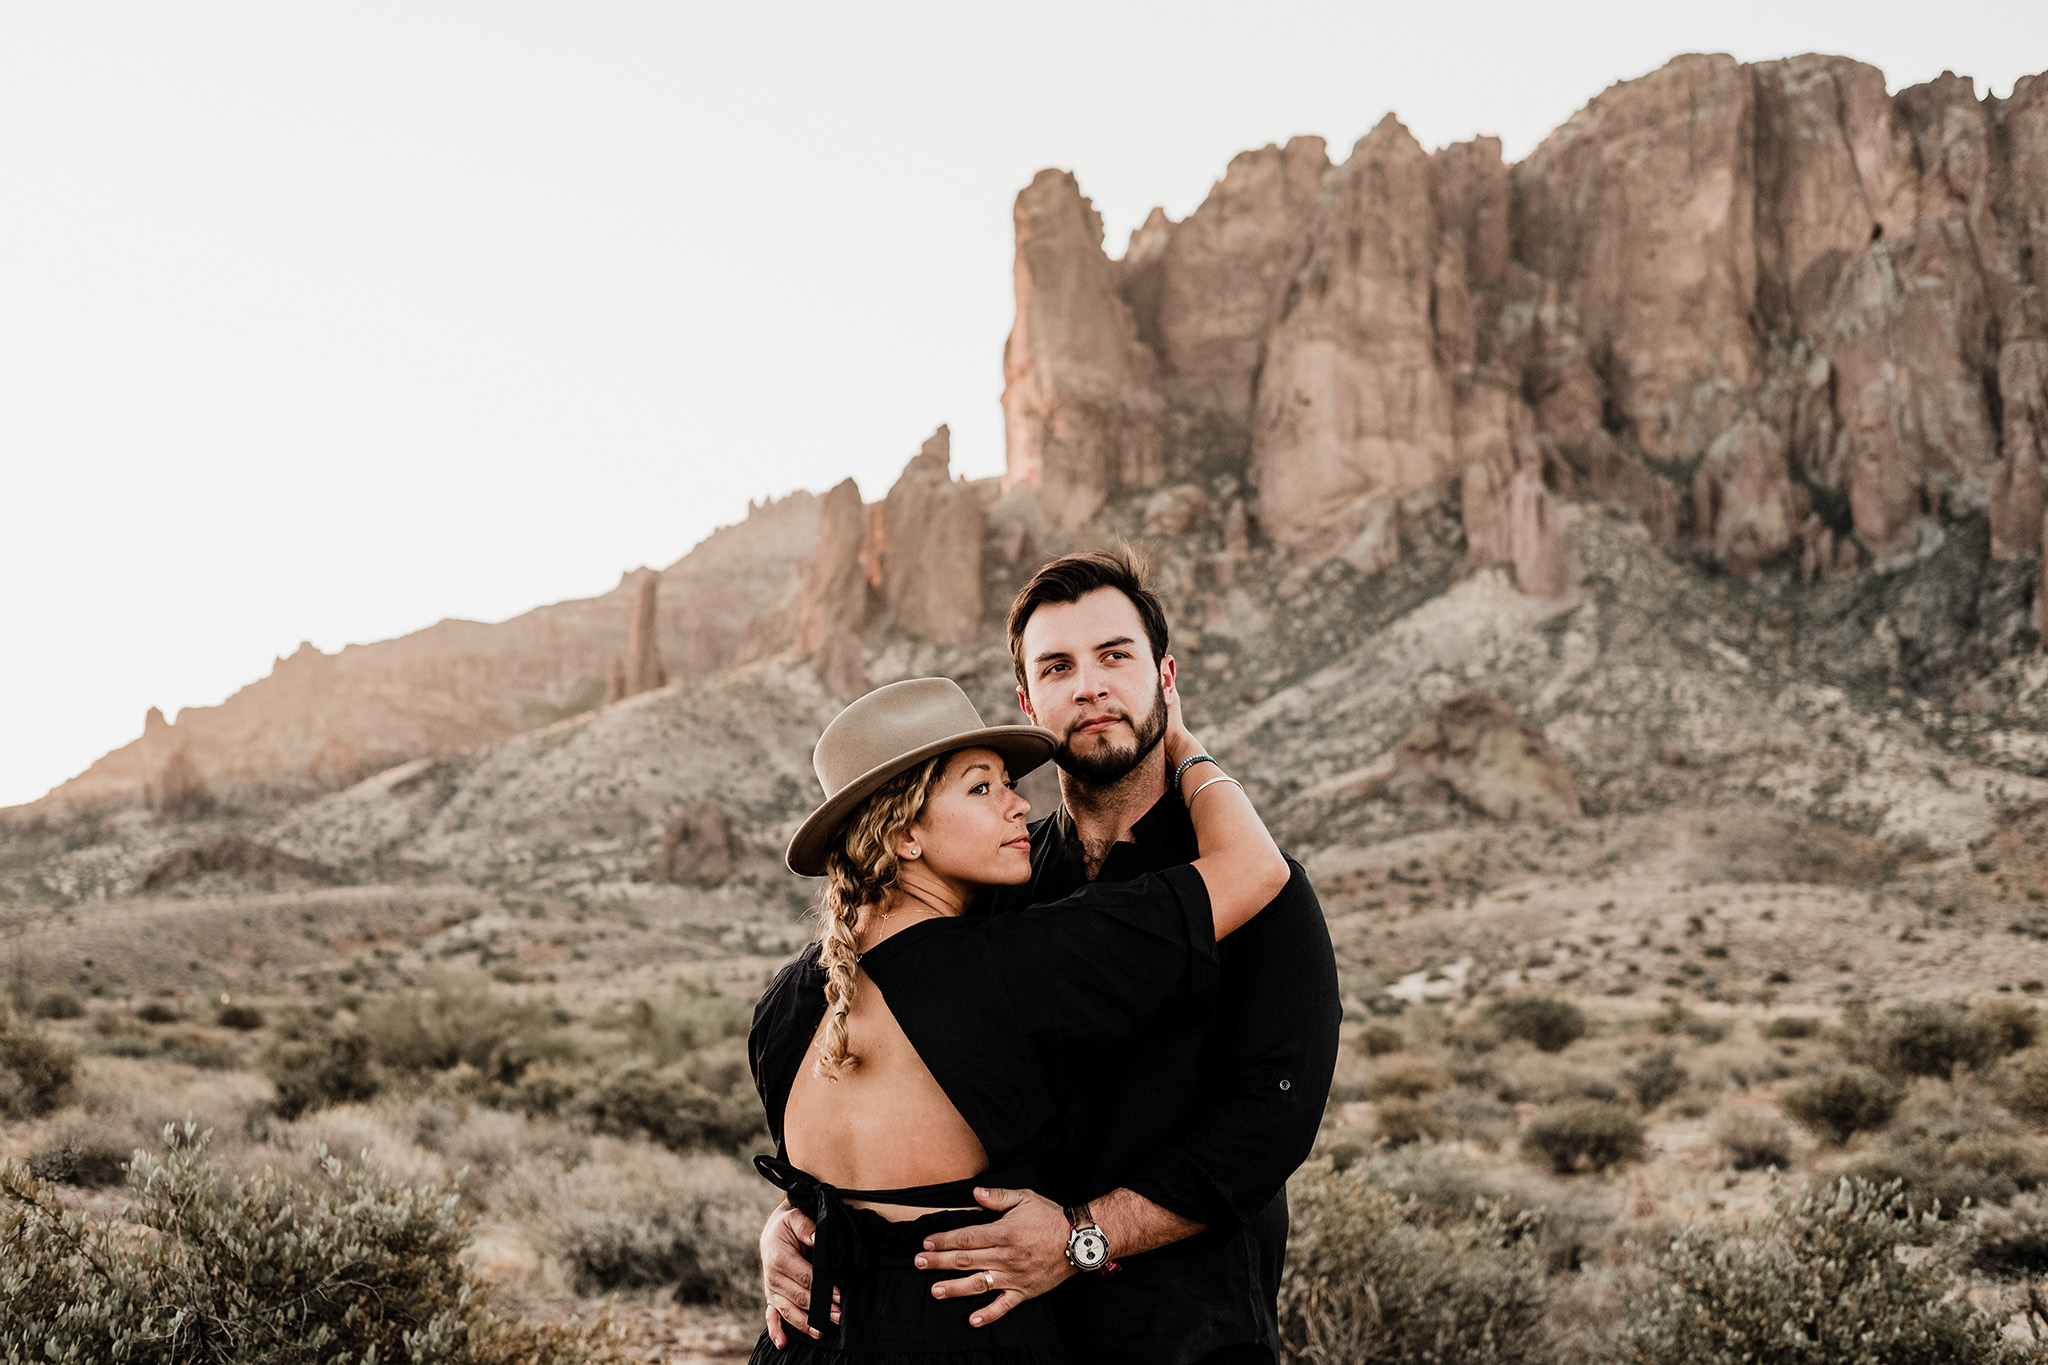 Arizona-Desert-Intimate-Wedding-Photographer-Lost-Dutchman-State-Park (26).jpg